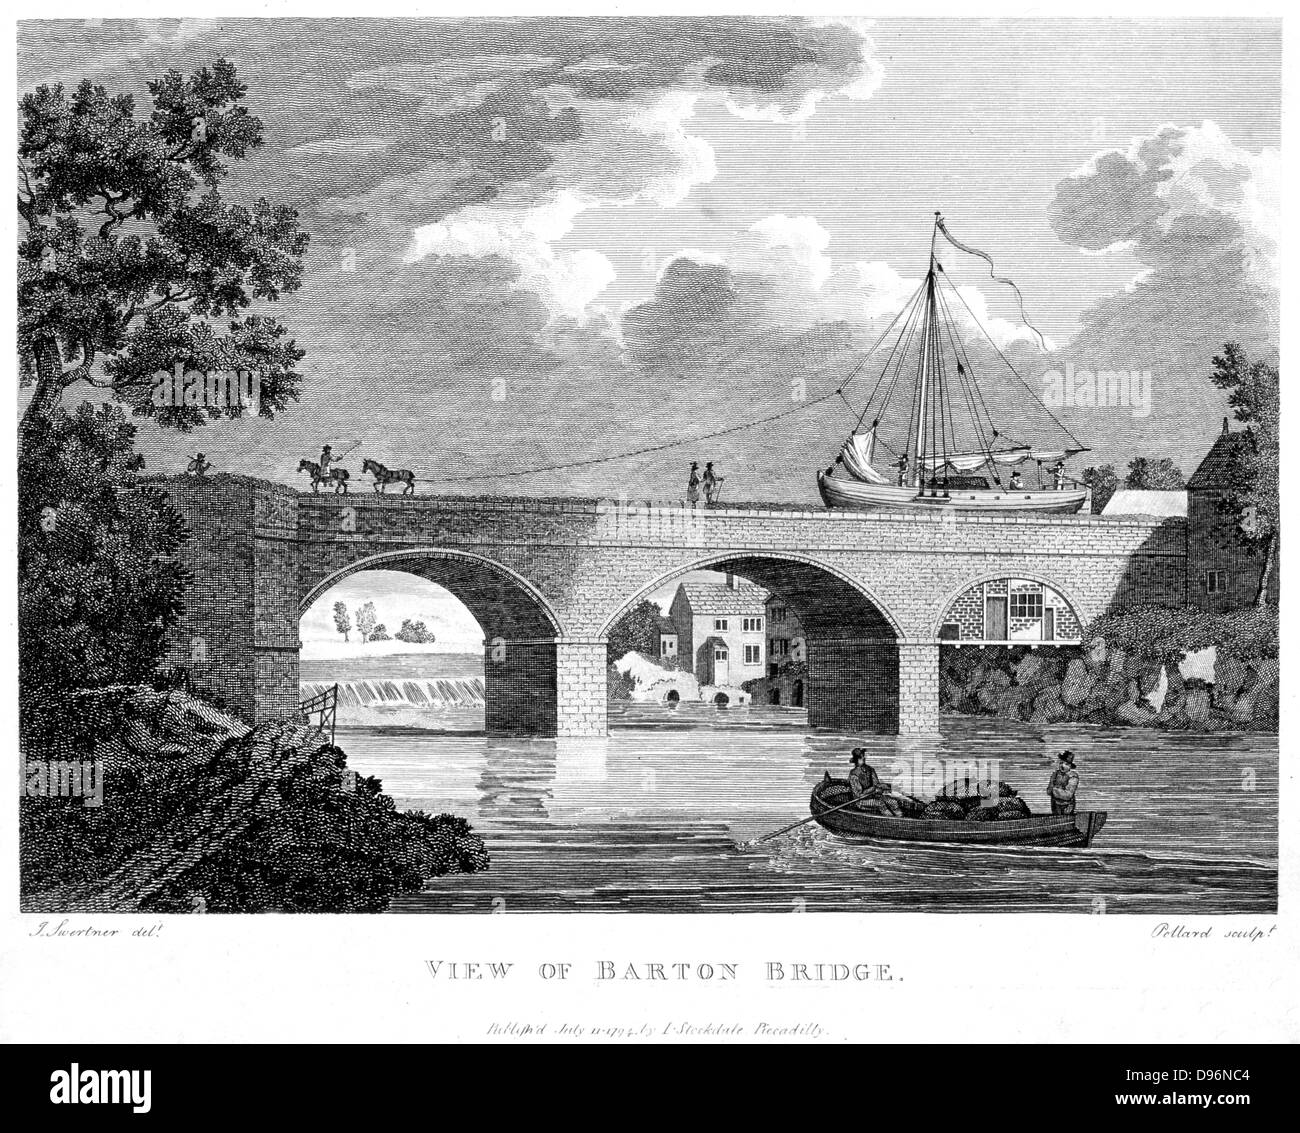 Bridgewater Canal, built to carry coals from the Duke of Bridgewater's mines at Worsley into the city of Manchester . Barge crossing the Barton aqueduct over the Irwell.  Canal opened 17 July 1761 and was later extended to Liverpool. Engineer: James Brindley. From copperplate by Pollard published in 1794. Stock Photo